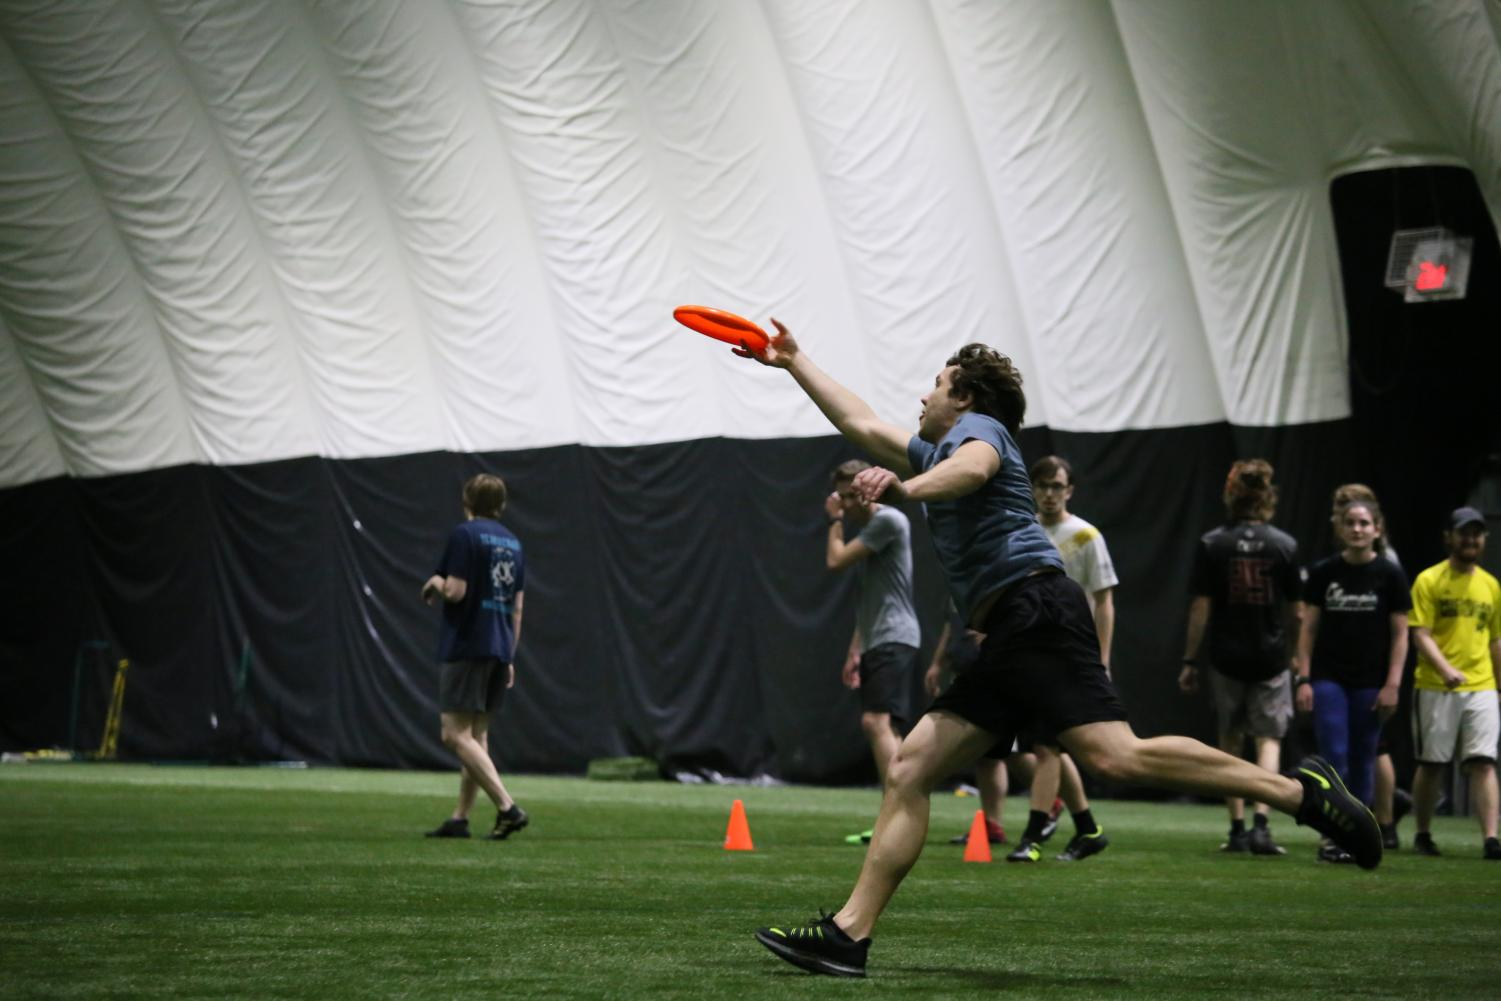 An Oakland Outlaw runs to catch the frisbee at a weekly practice on campus.